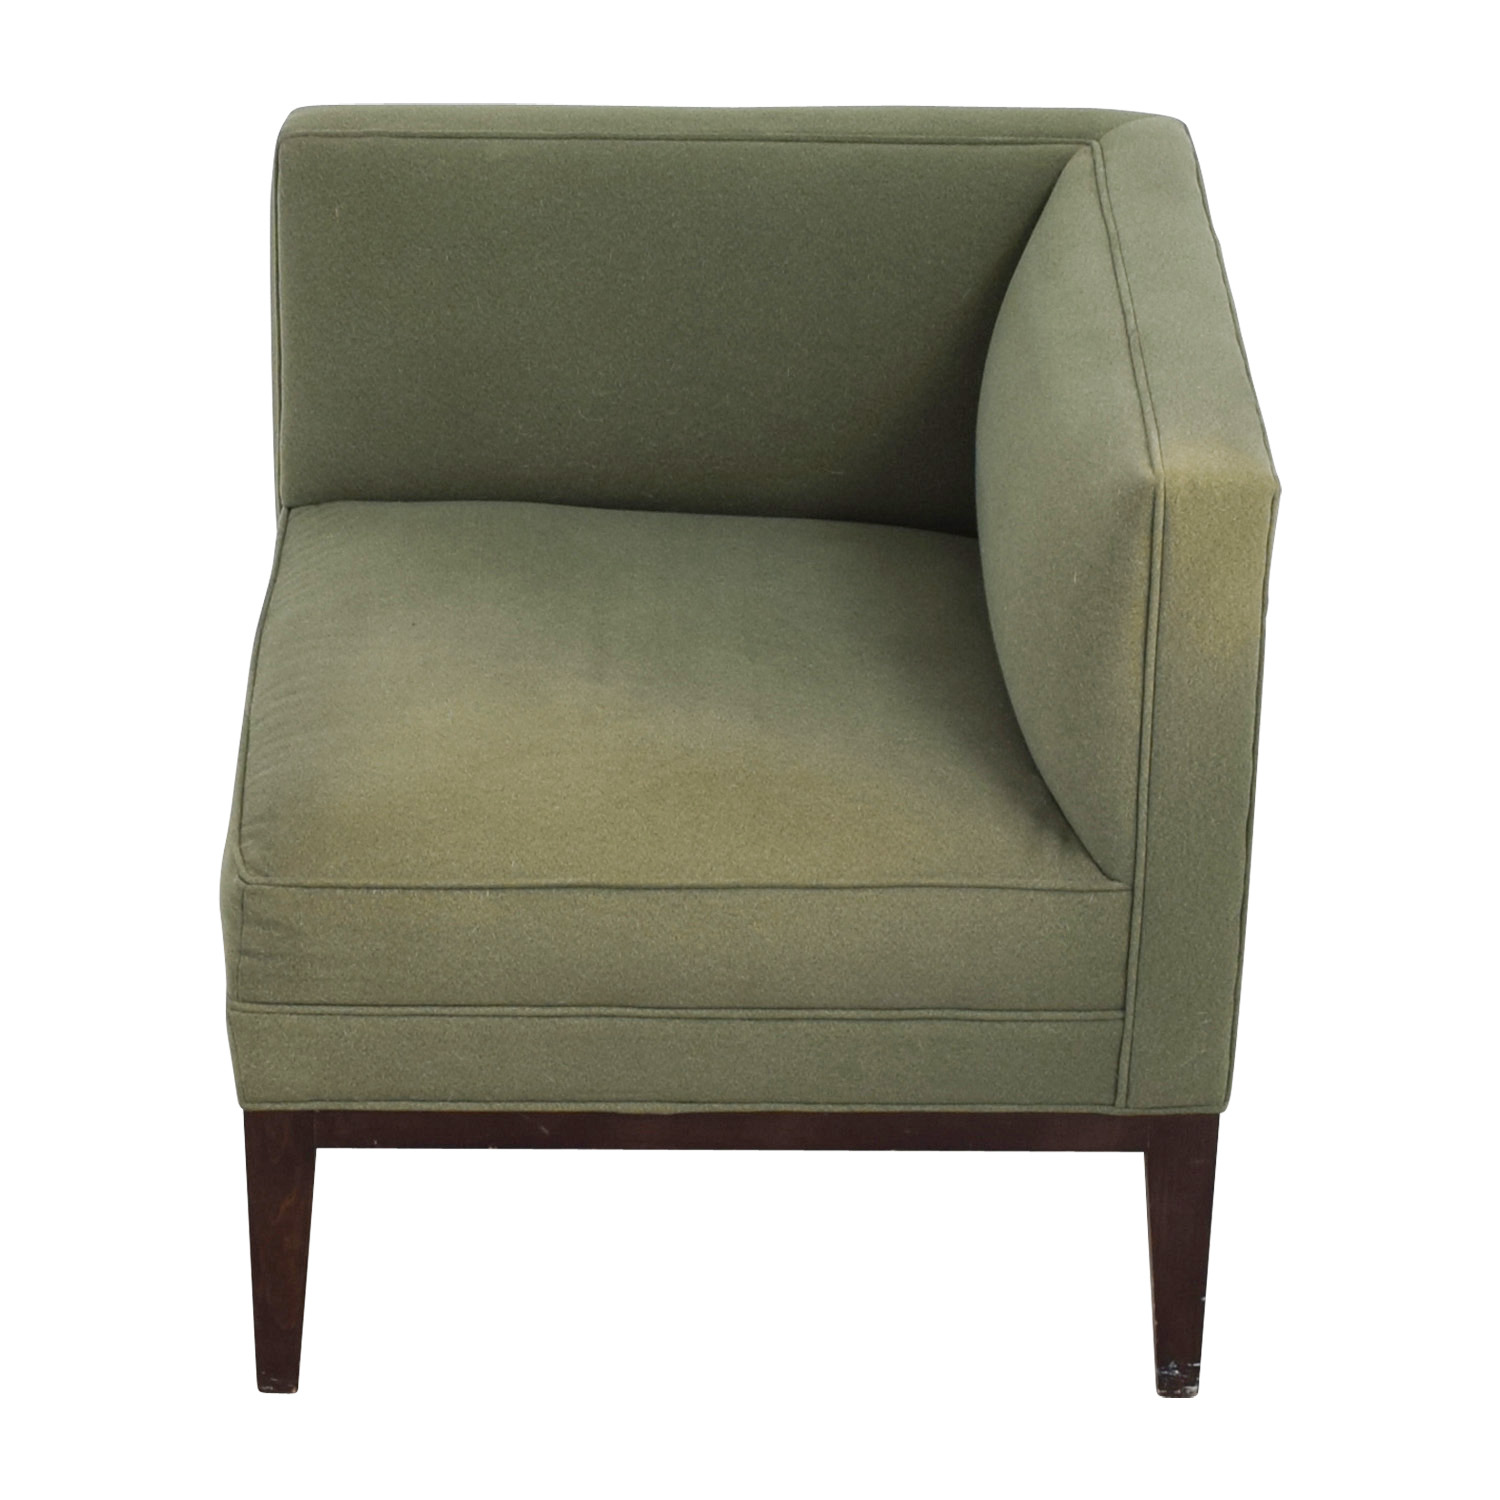 Mitchell Gold + Bob Williams Mitchell Gold + Bob Williams Sage Green Corner Accent Chair second hand